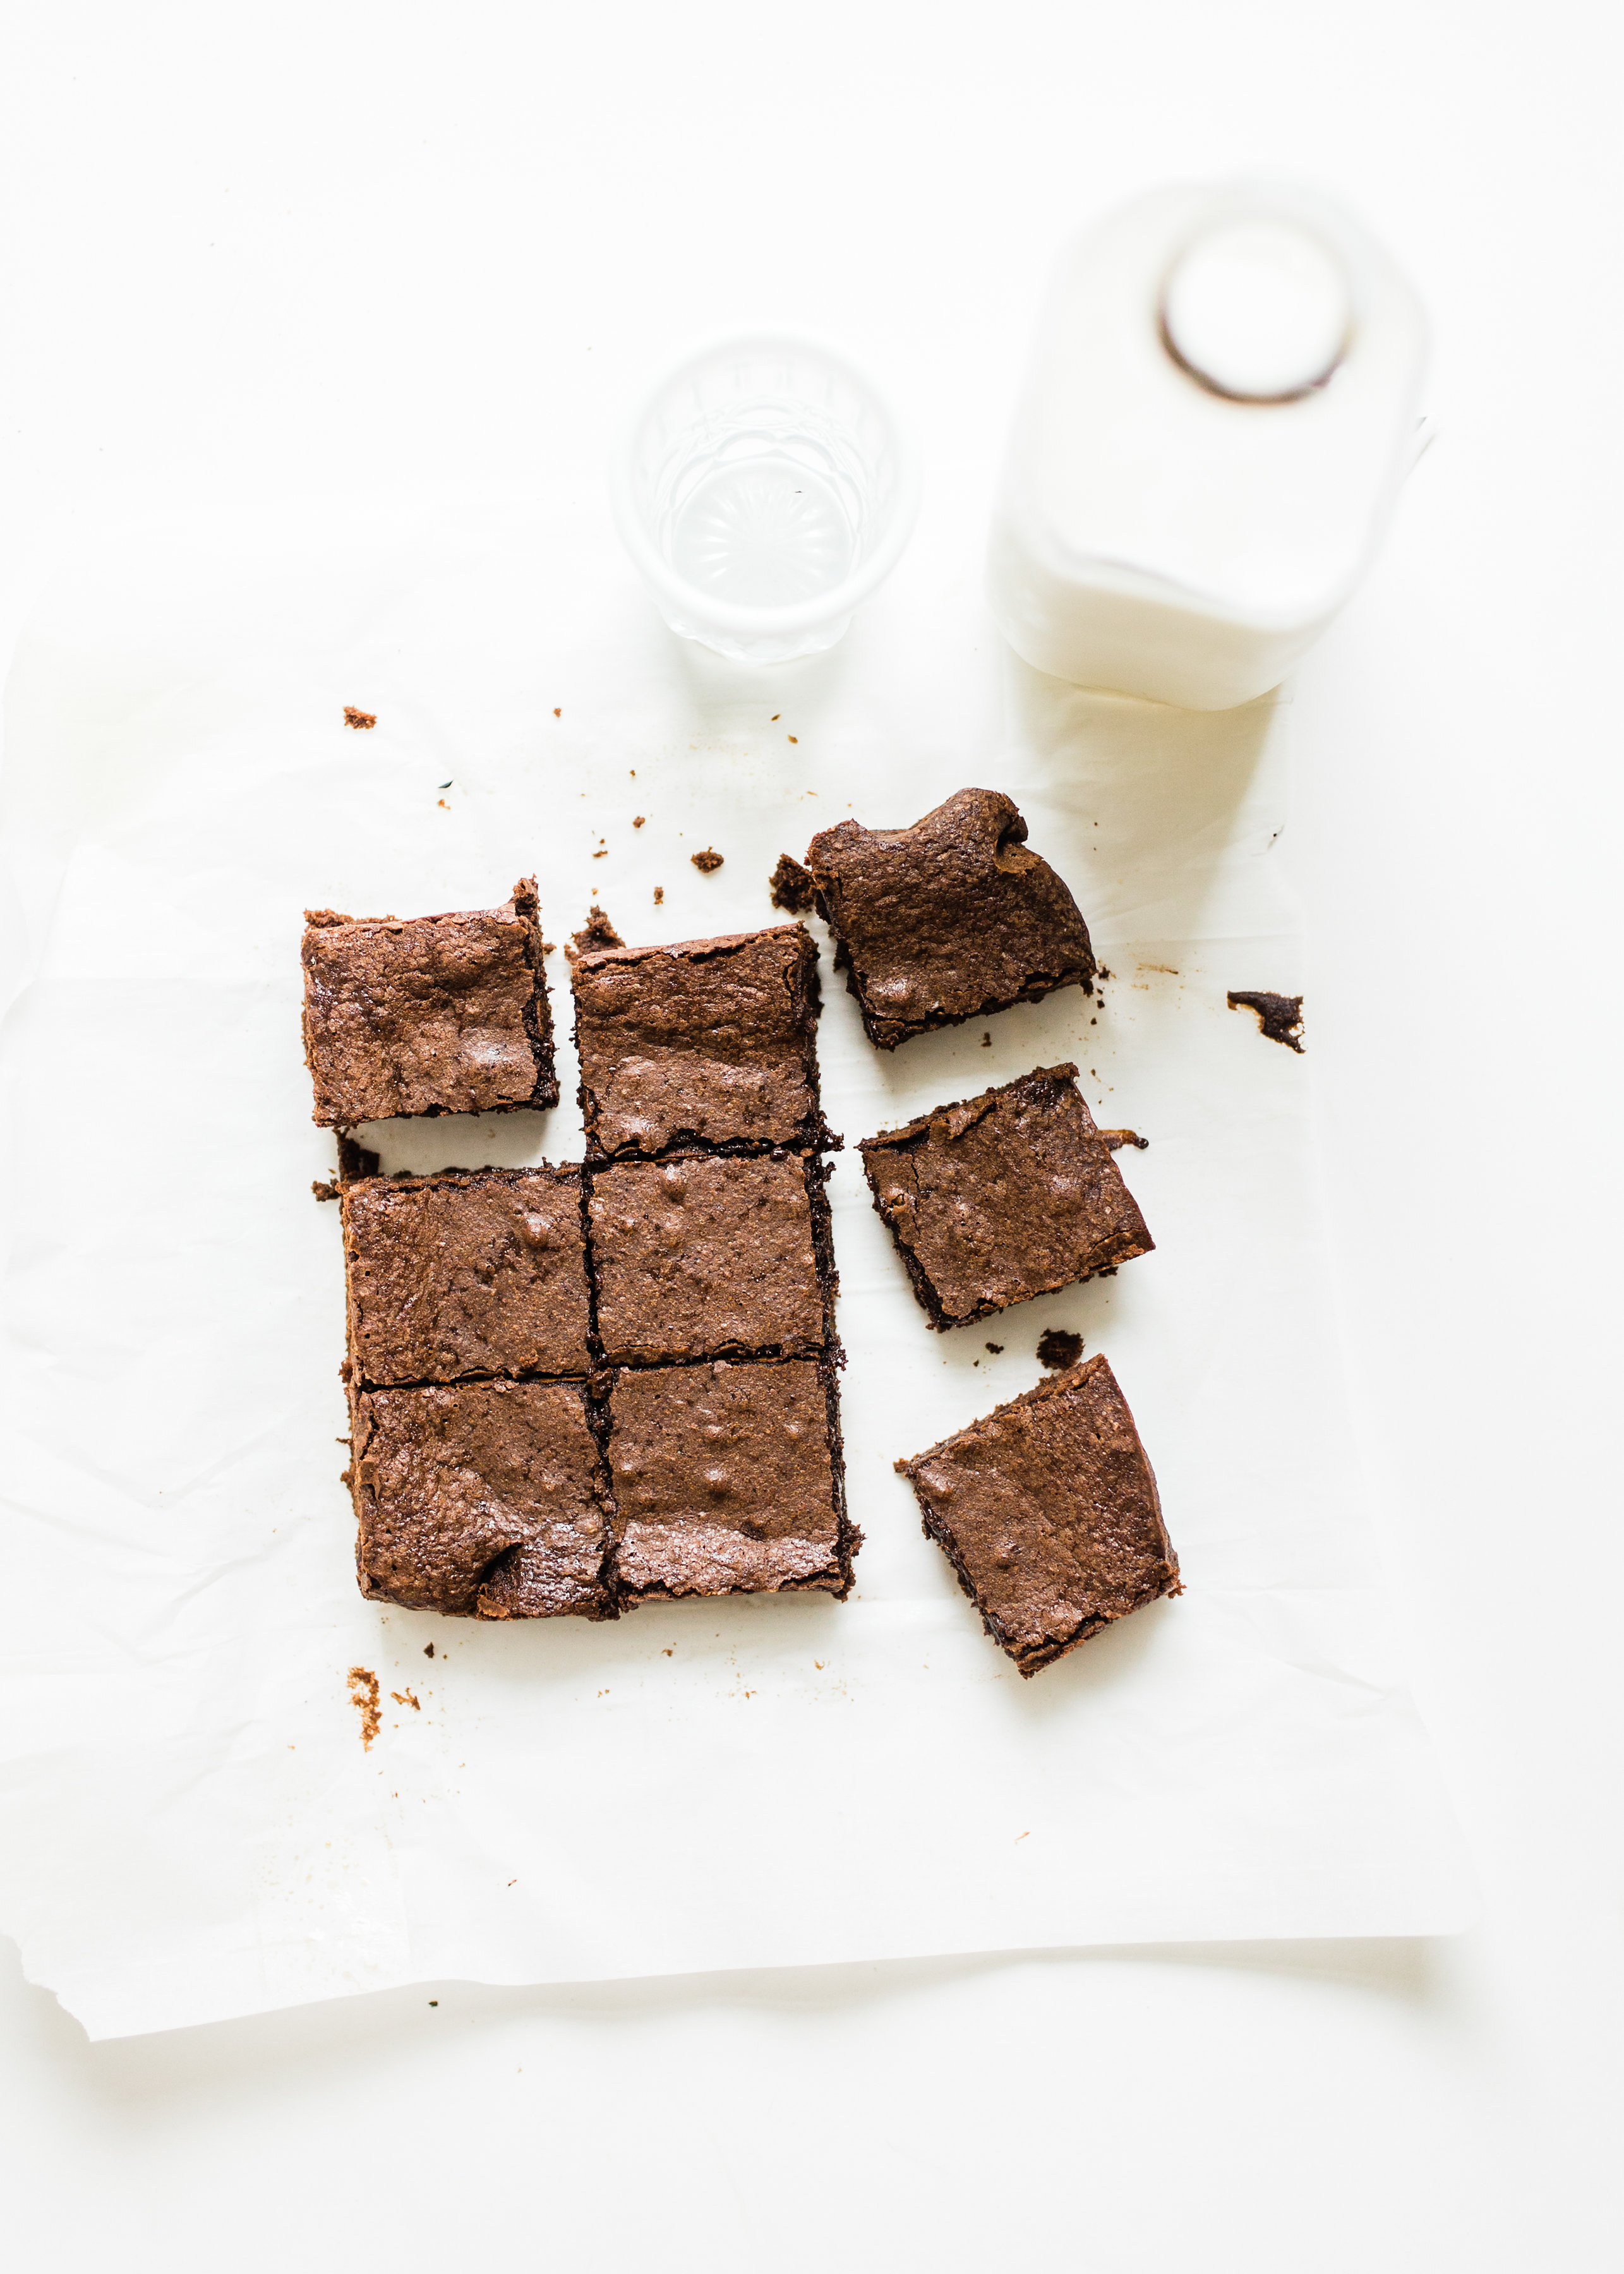 How to Make Easy, Fudgy, Chewy, Cakey, Better Than Box Mix Brownies